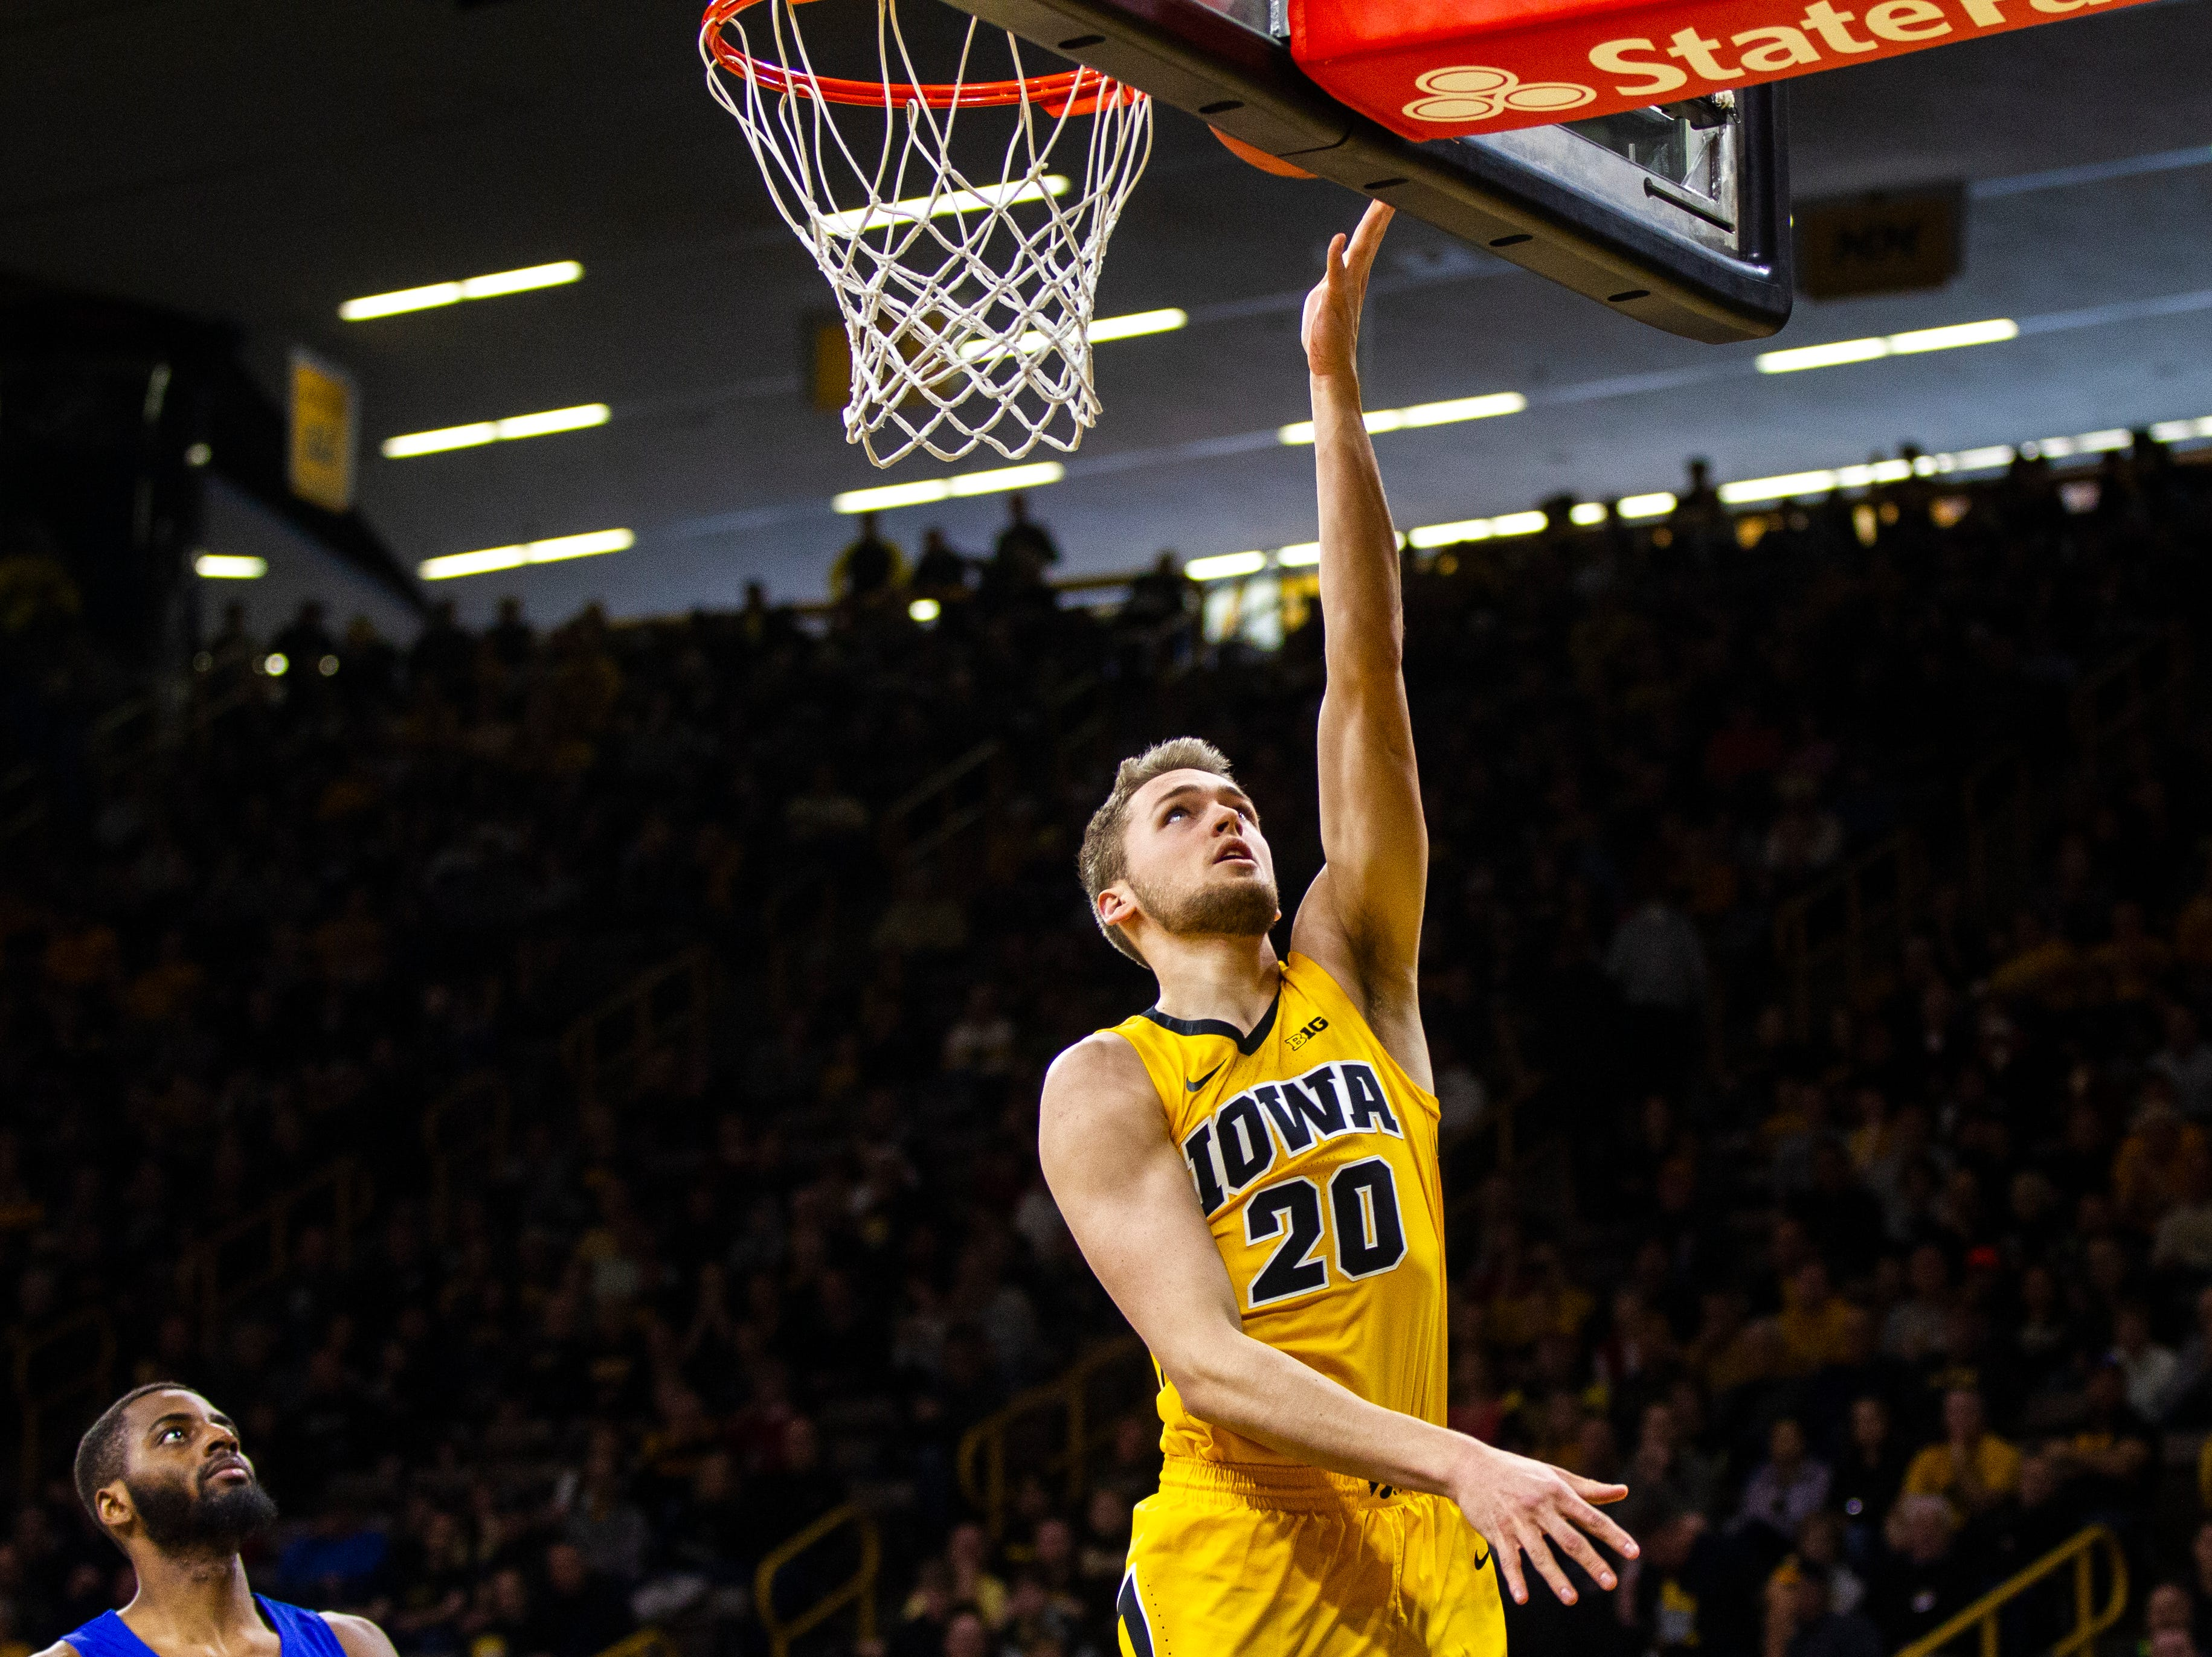 Iowa forward Riley Till (20) makes a layup during a NCAA men's basketball game on Saturday, Dec. 22, 2018, at Carver-Hawkeye Arena in Iowa City.